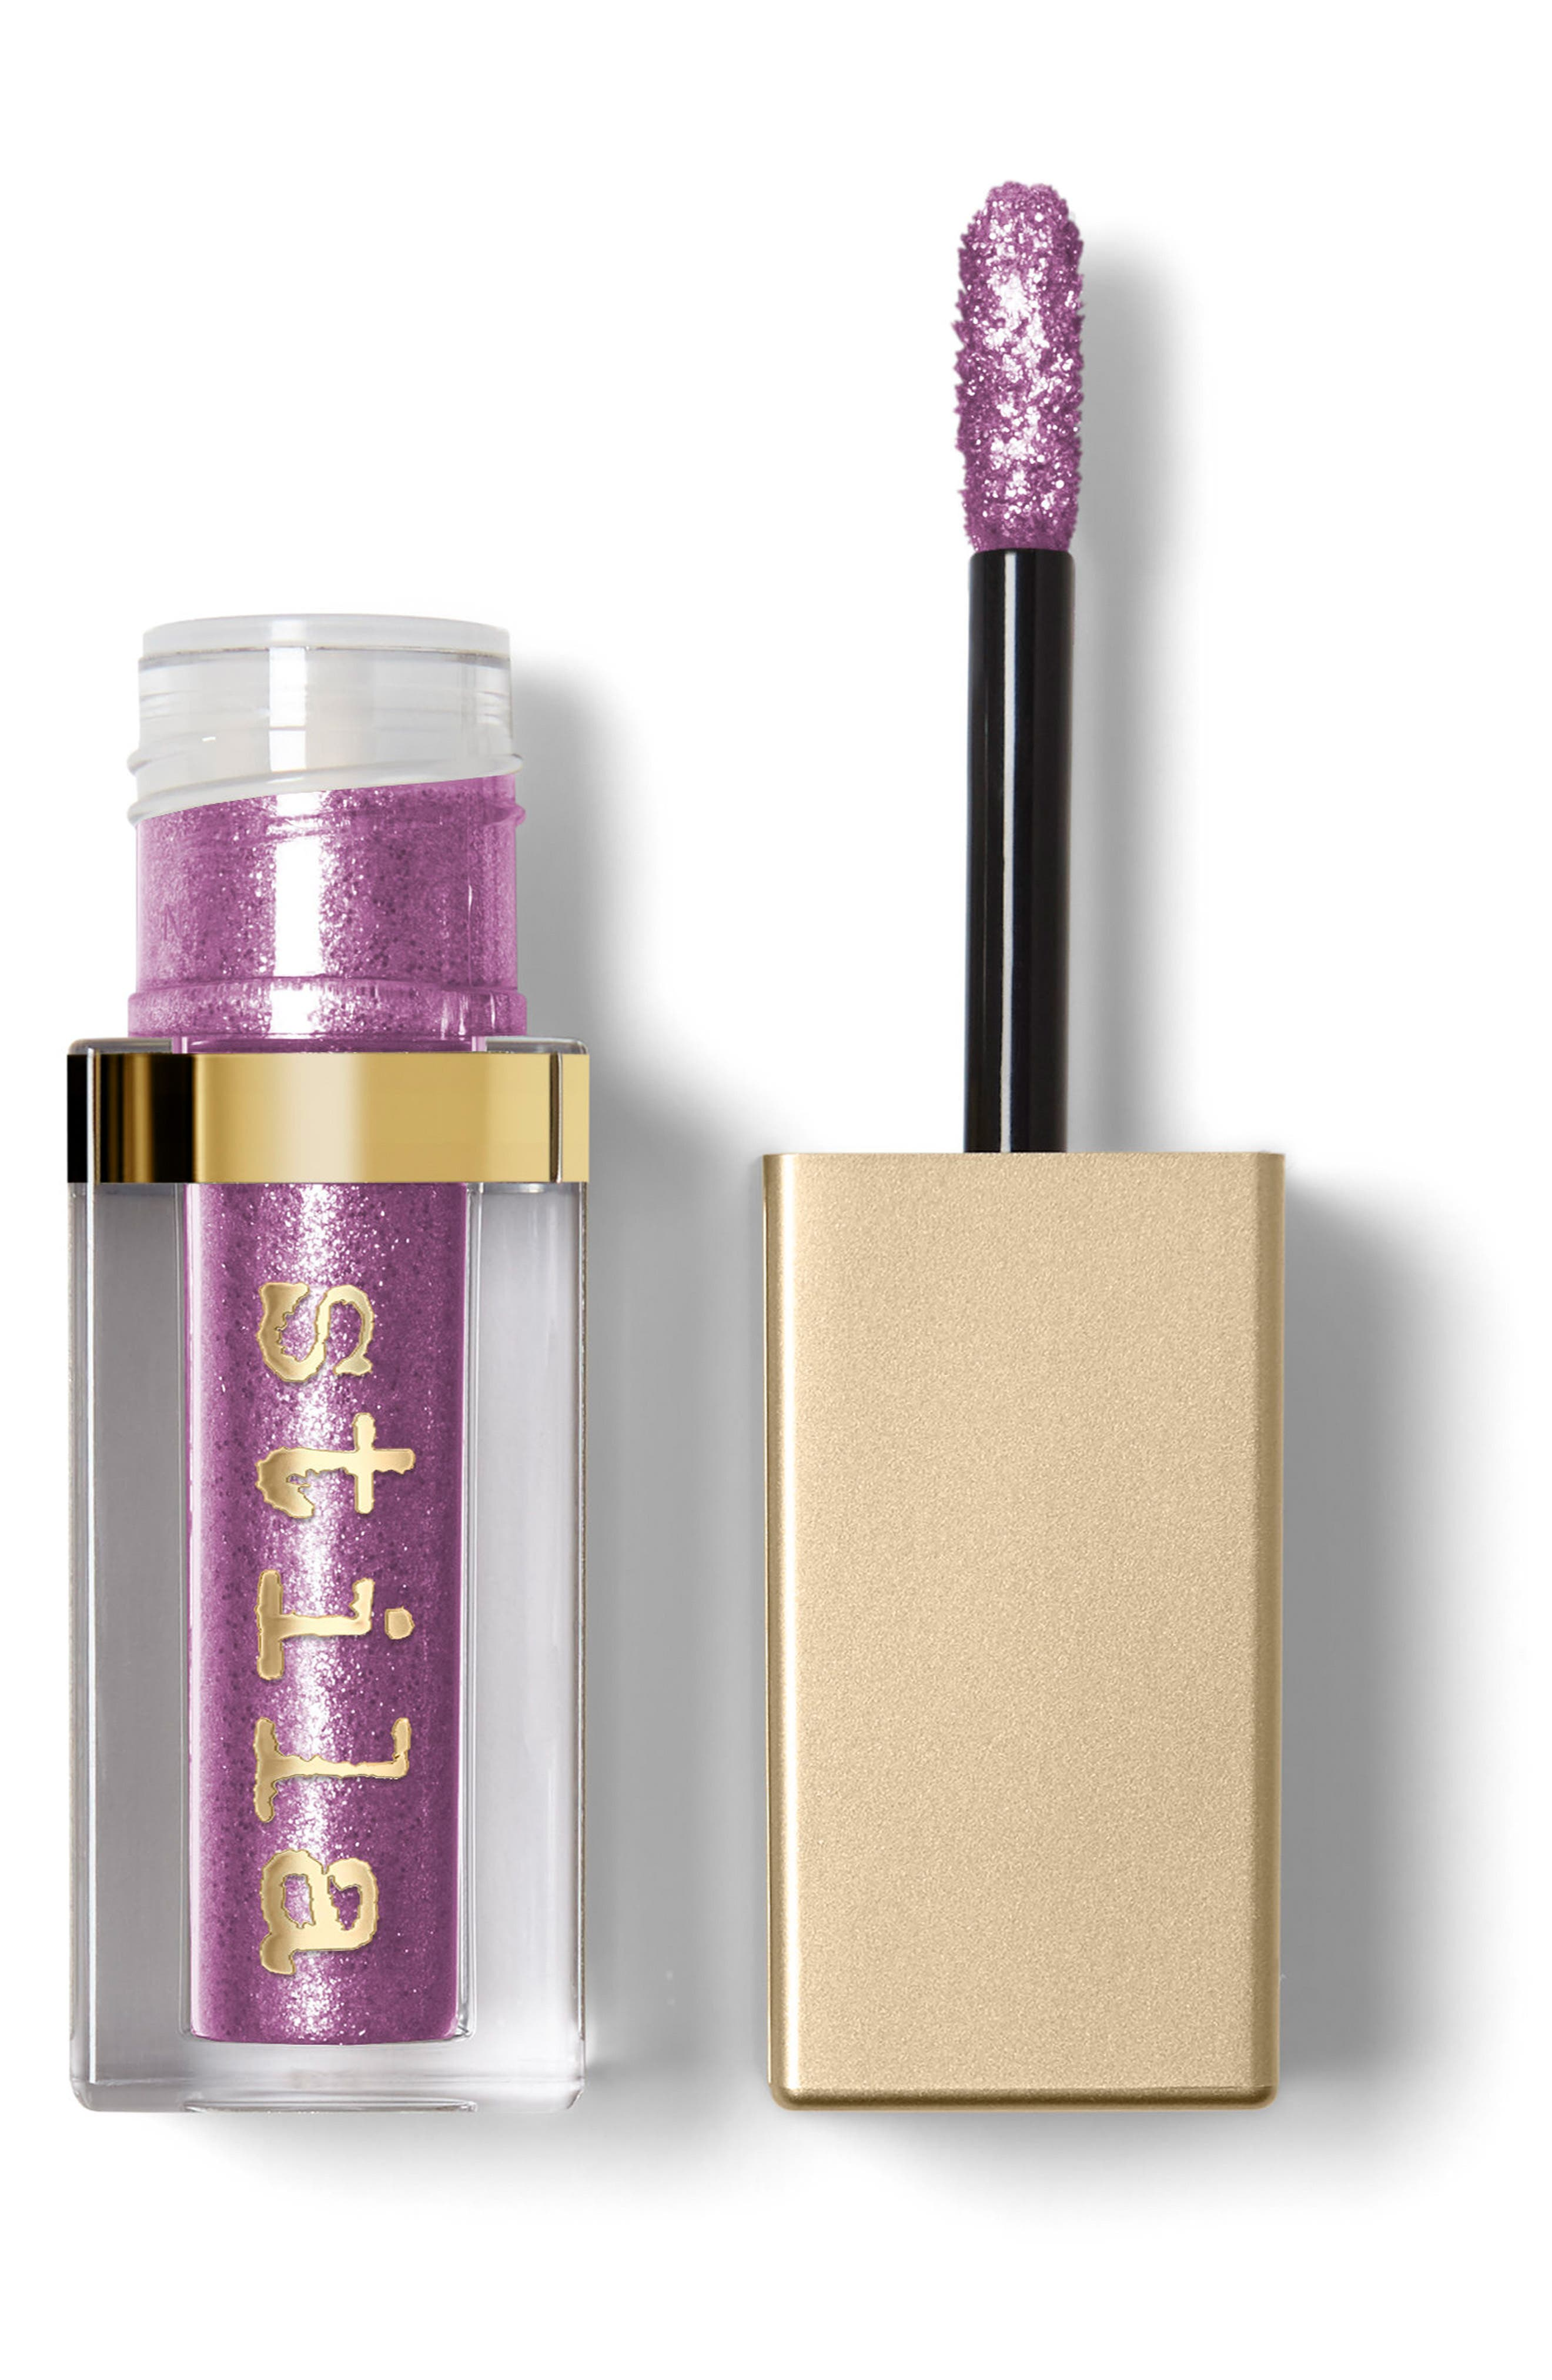 Alternate Image 1 Selected - Stila Magnificent Metals Glitter & Glow Liquid Eyeshadow